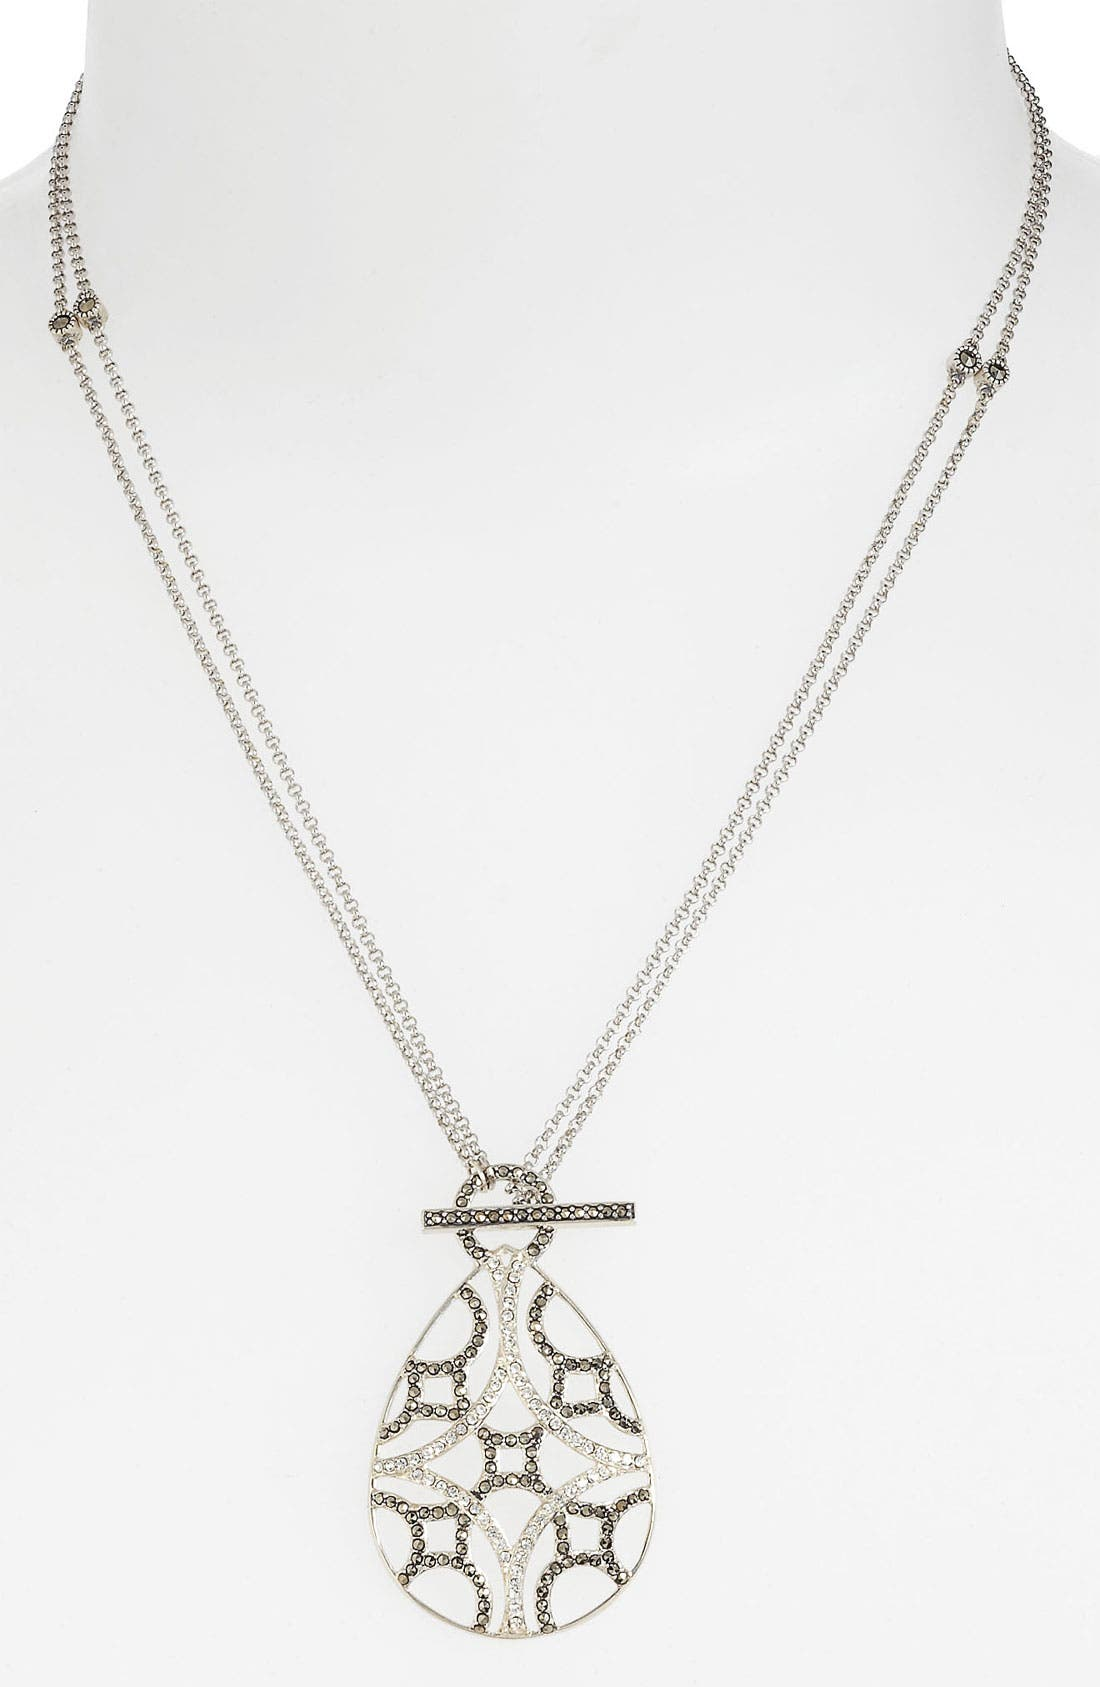 Main Image - Judith Jack 'Turq Matrix' Convertible Pendant Necklace